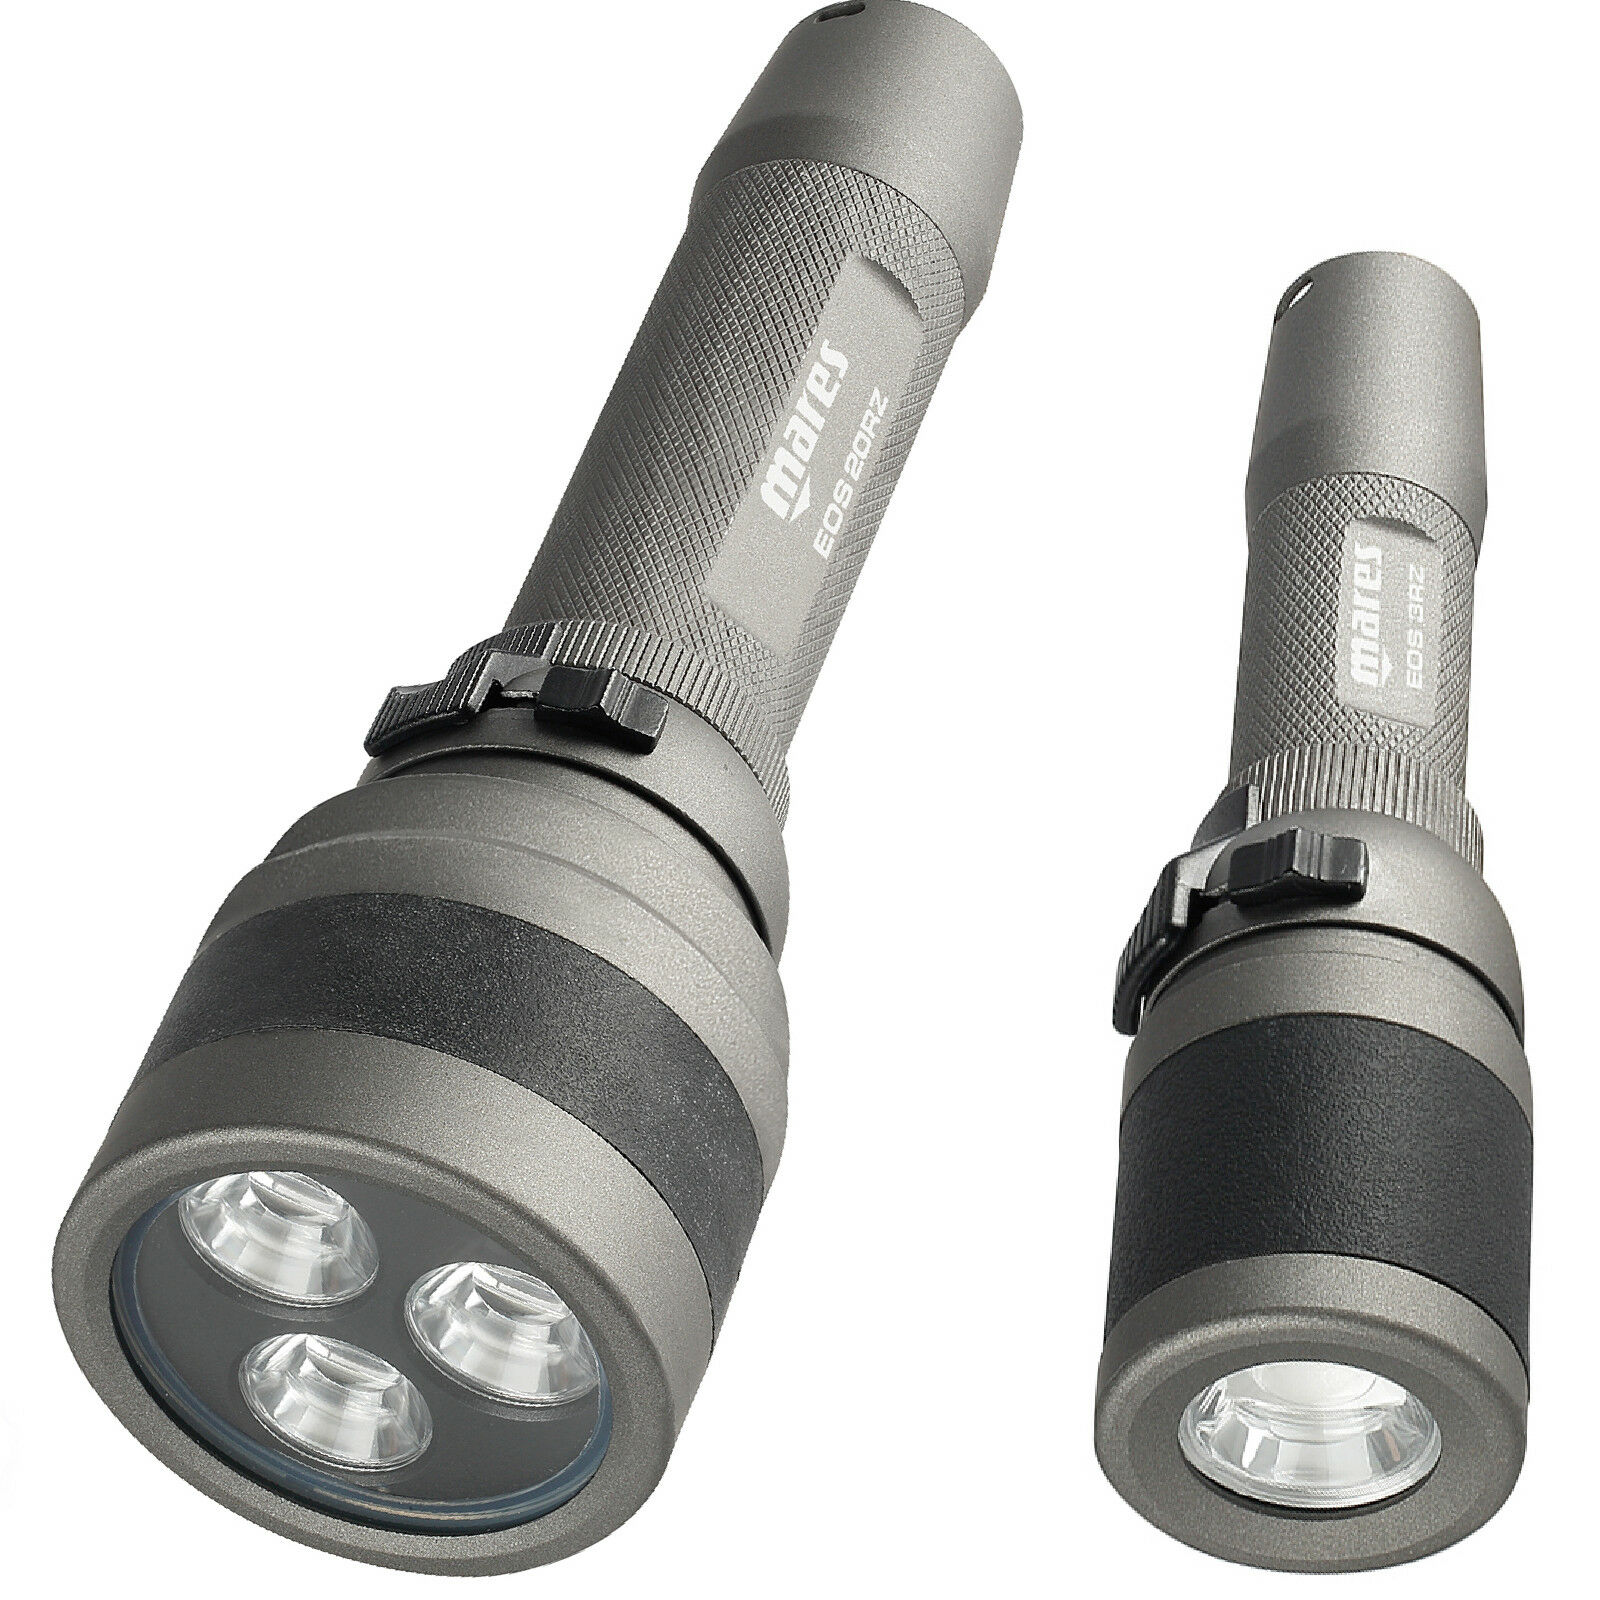 RO1 RO1 RO1 coppia Lampade MARES EOS 20RZ + EOS 3RZ metal LED torch Ricaricabili d1d41f